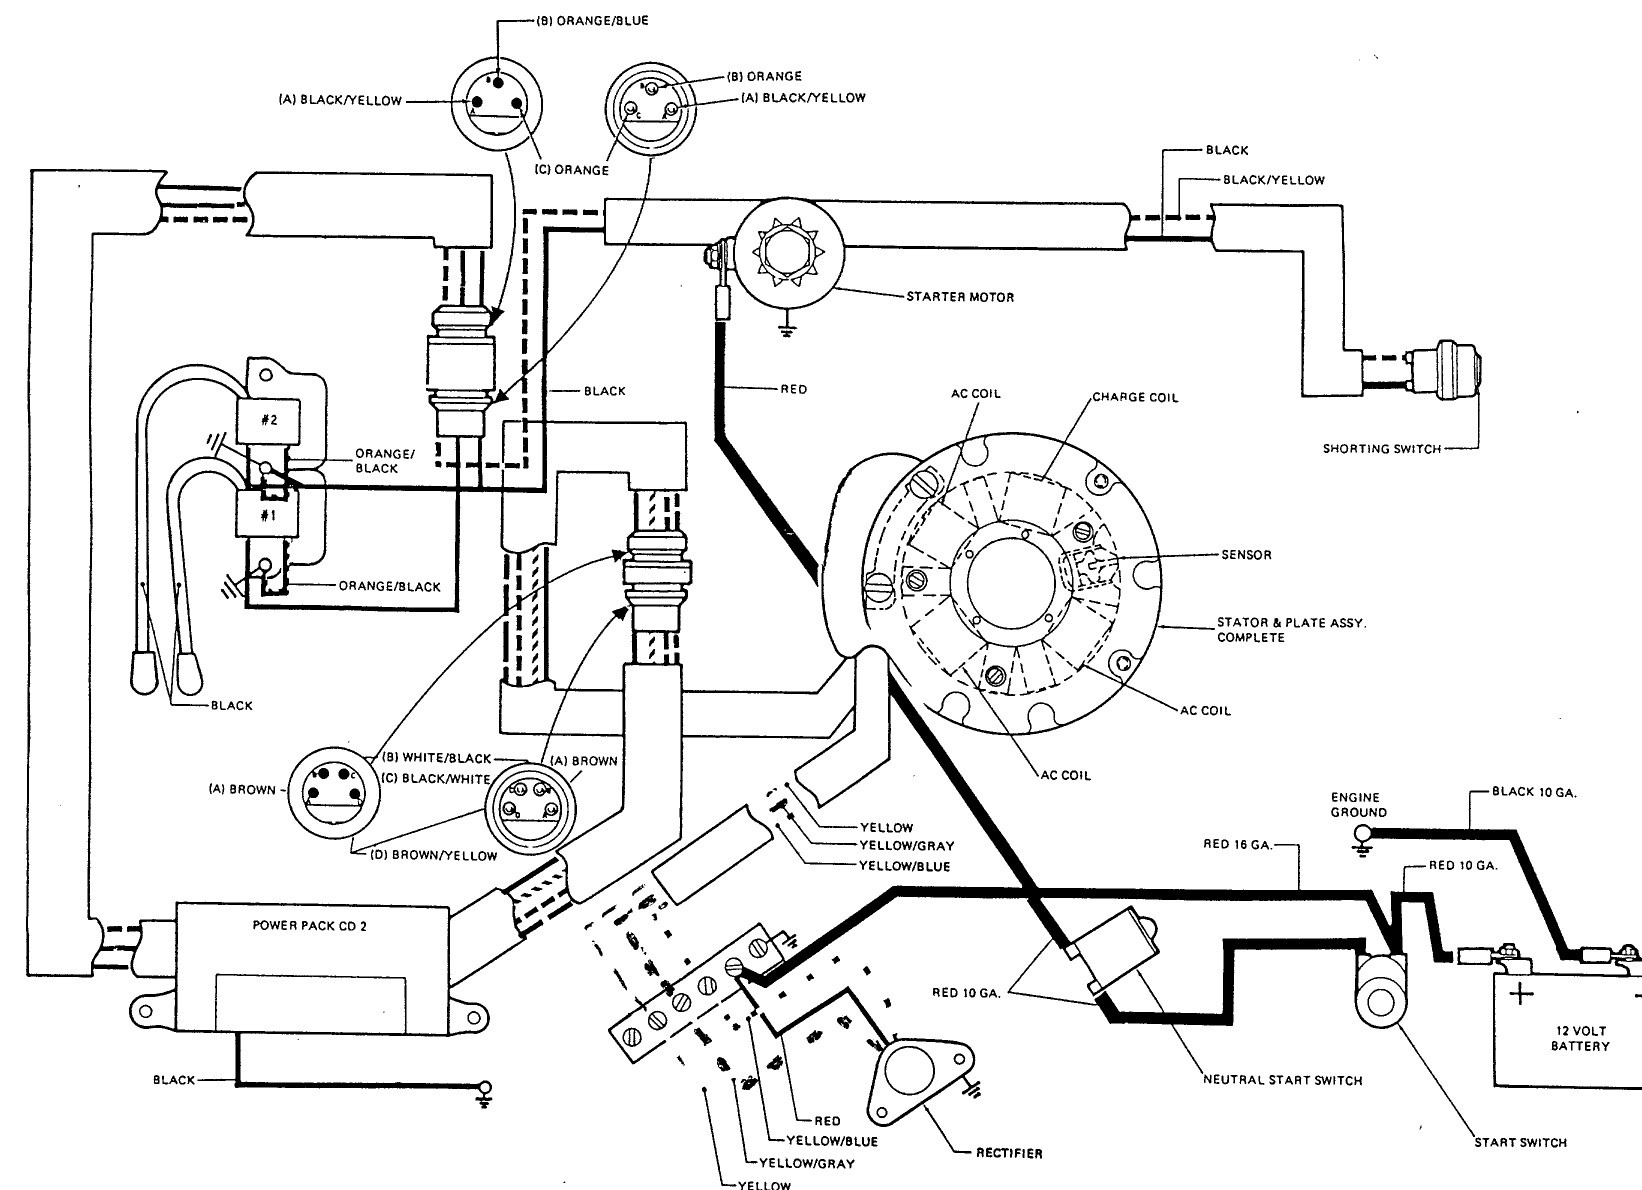 Outboard Engine Diagram Maintaining Johnson 9 9 Troubleshooting Of Outboard Engine Diagram